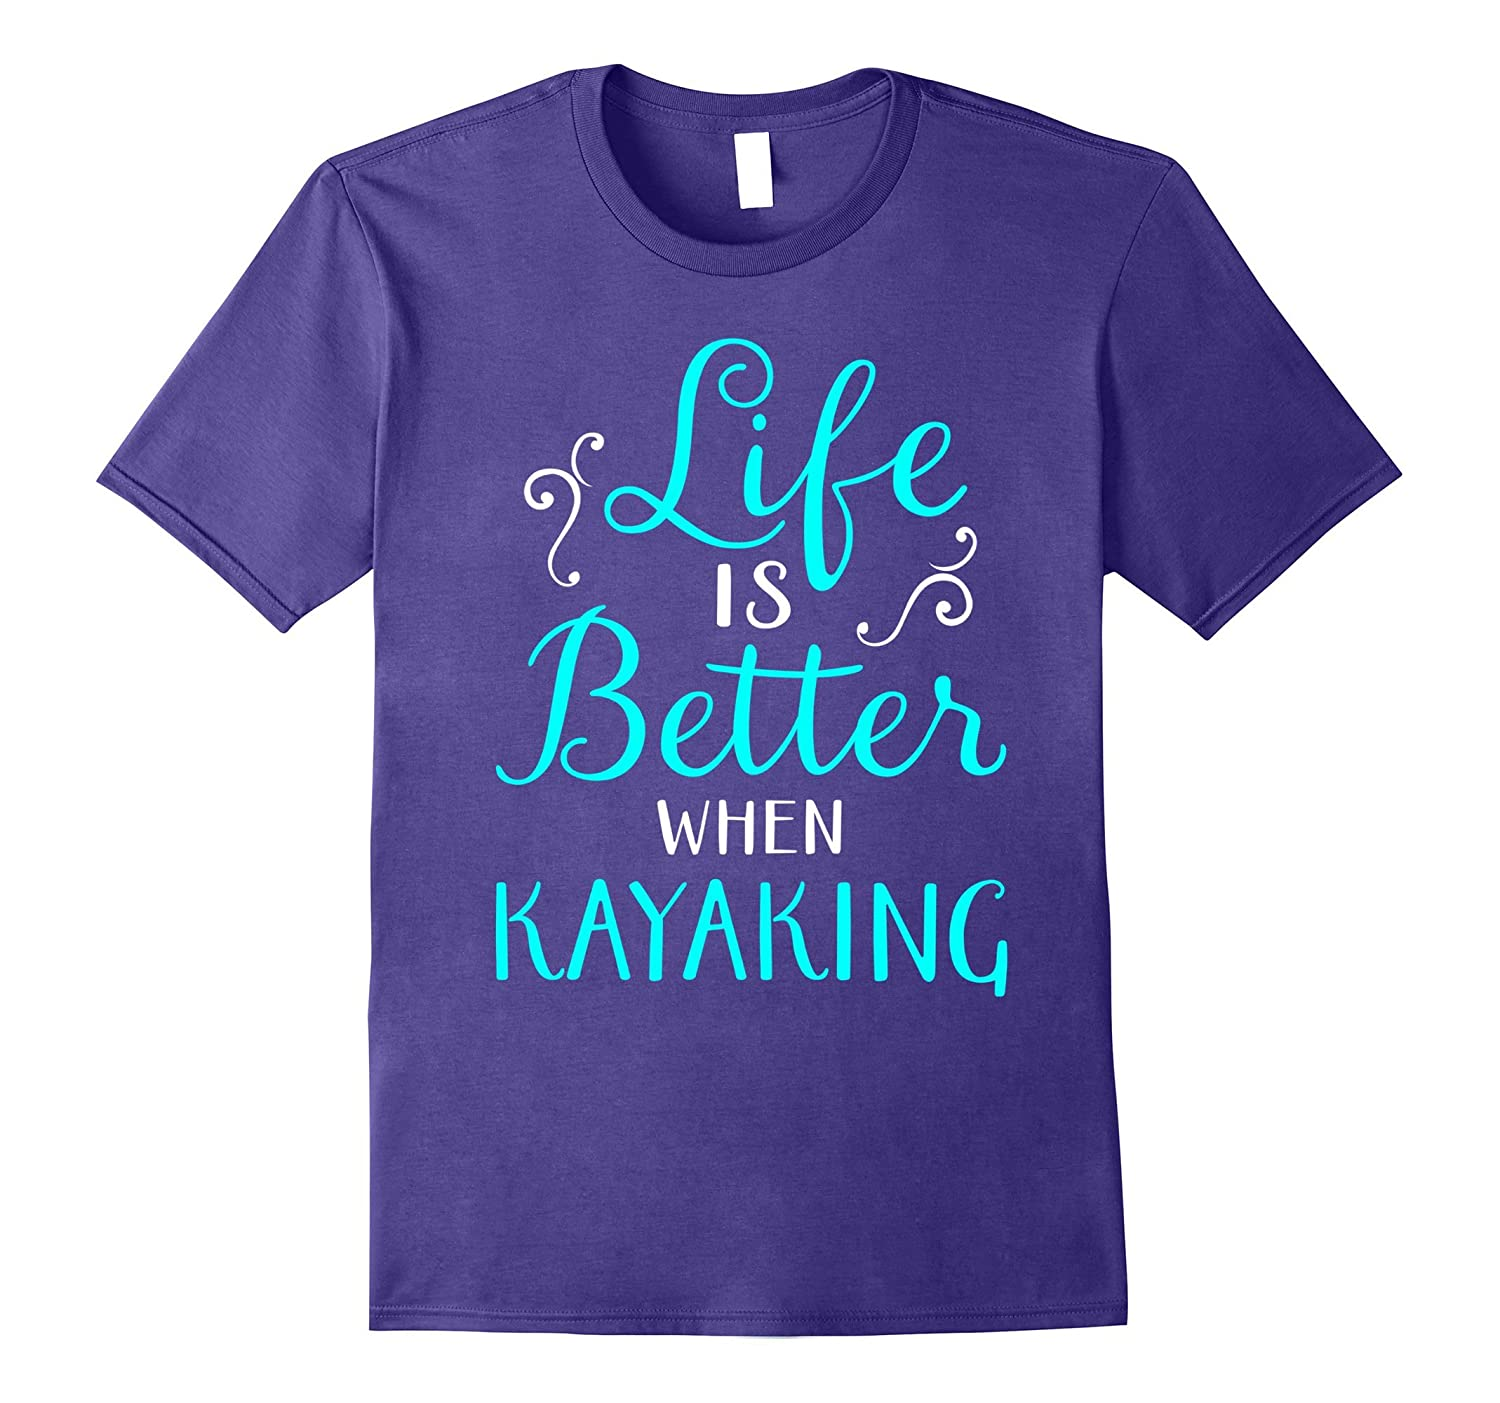 Life Is Better When Kayaking Shirt for Kayakers-RT